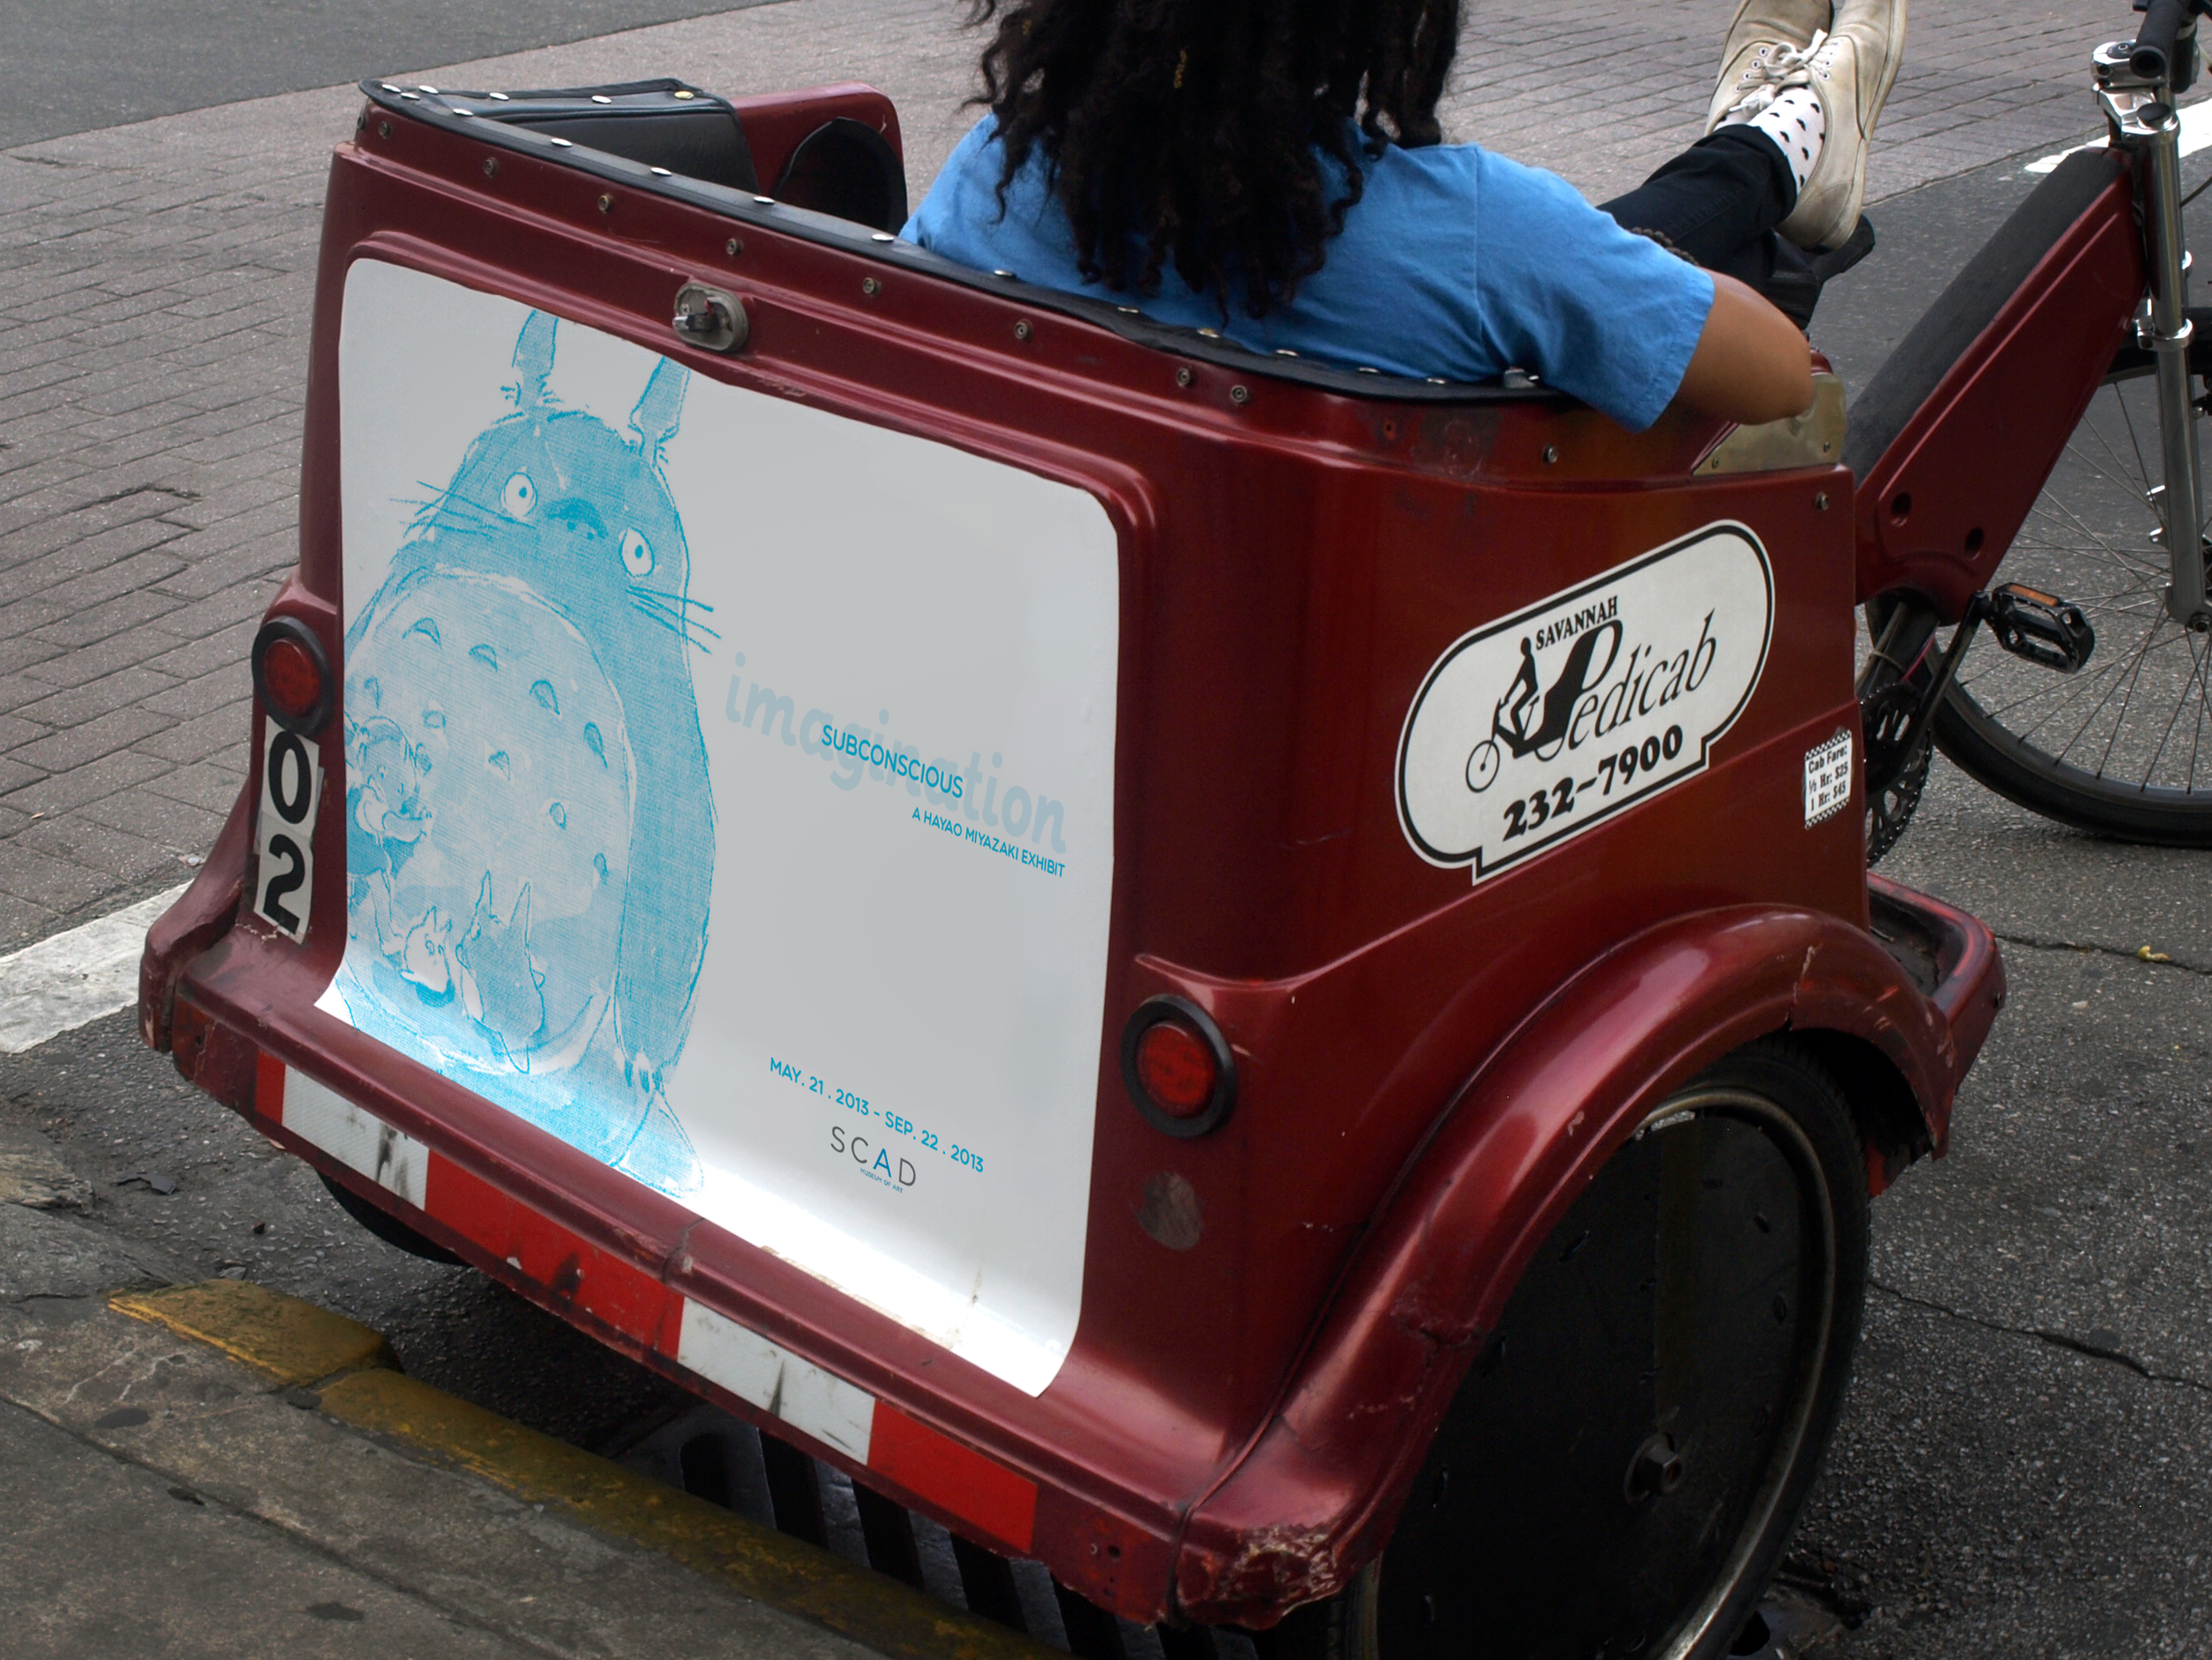 Smaller advertisement on back of pedicab, a common sight in Savannah.